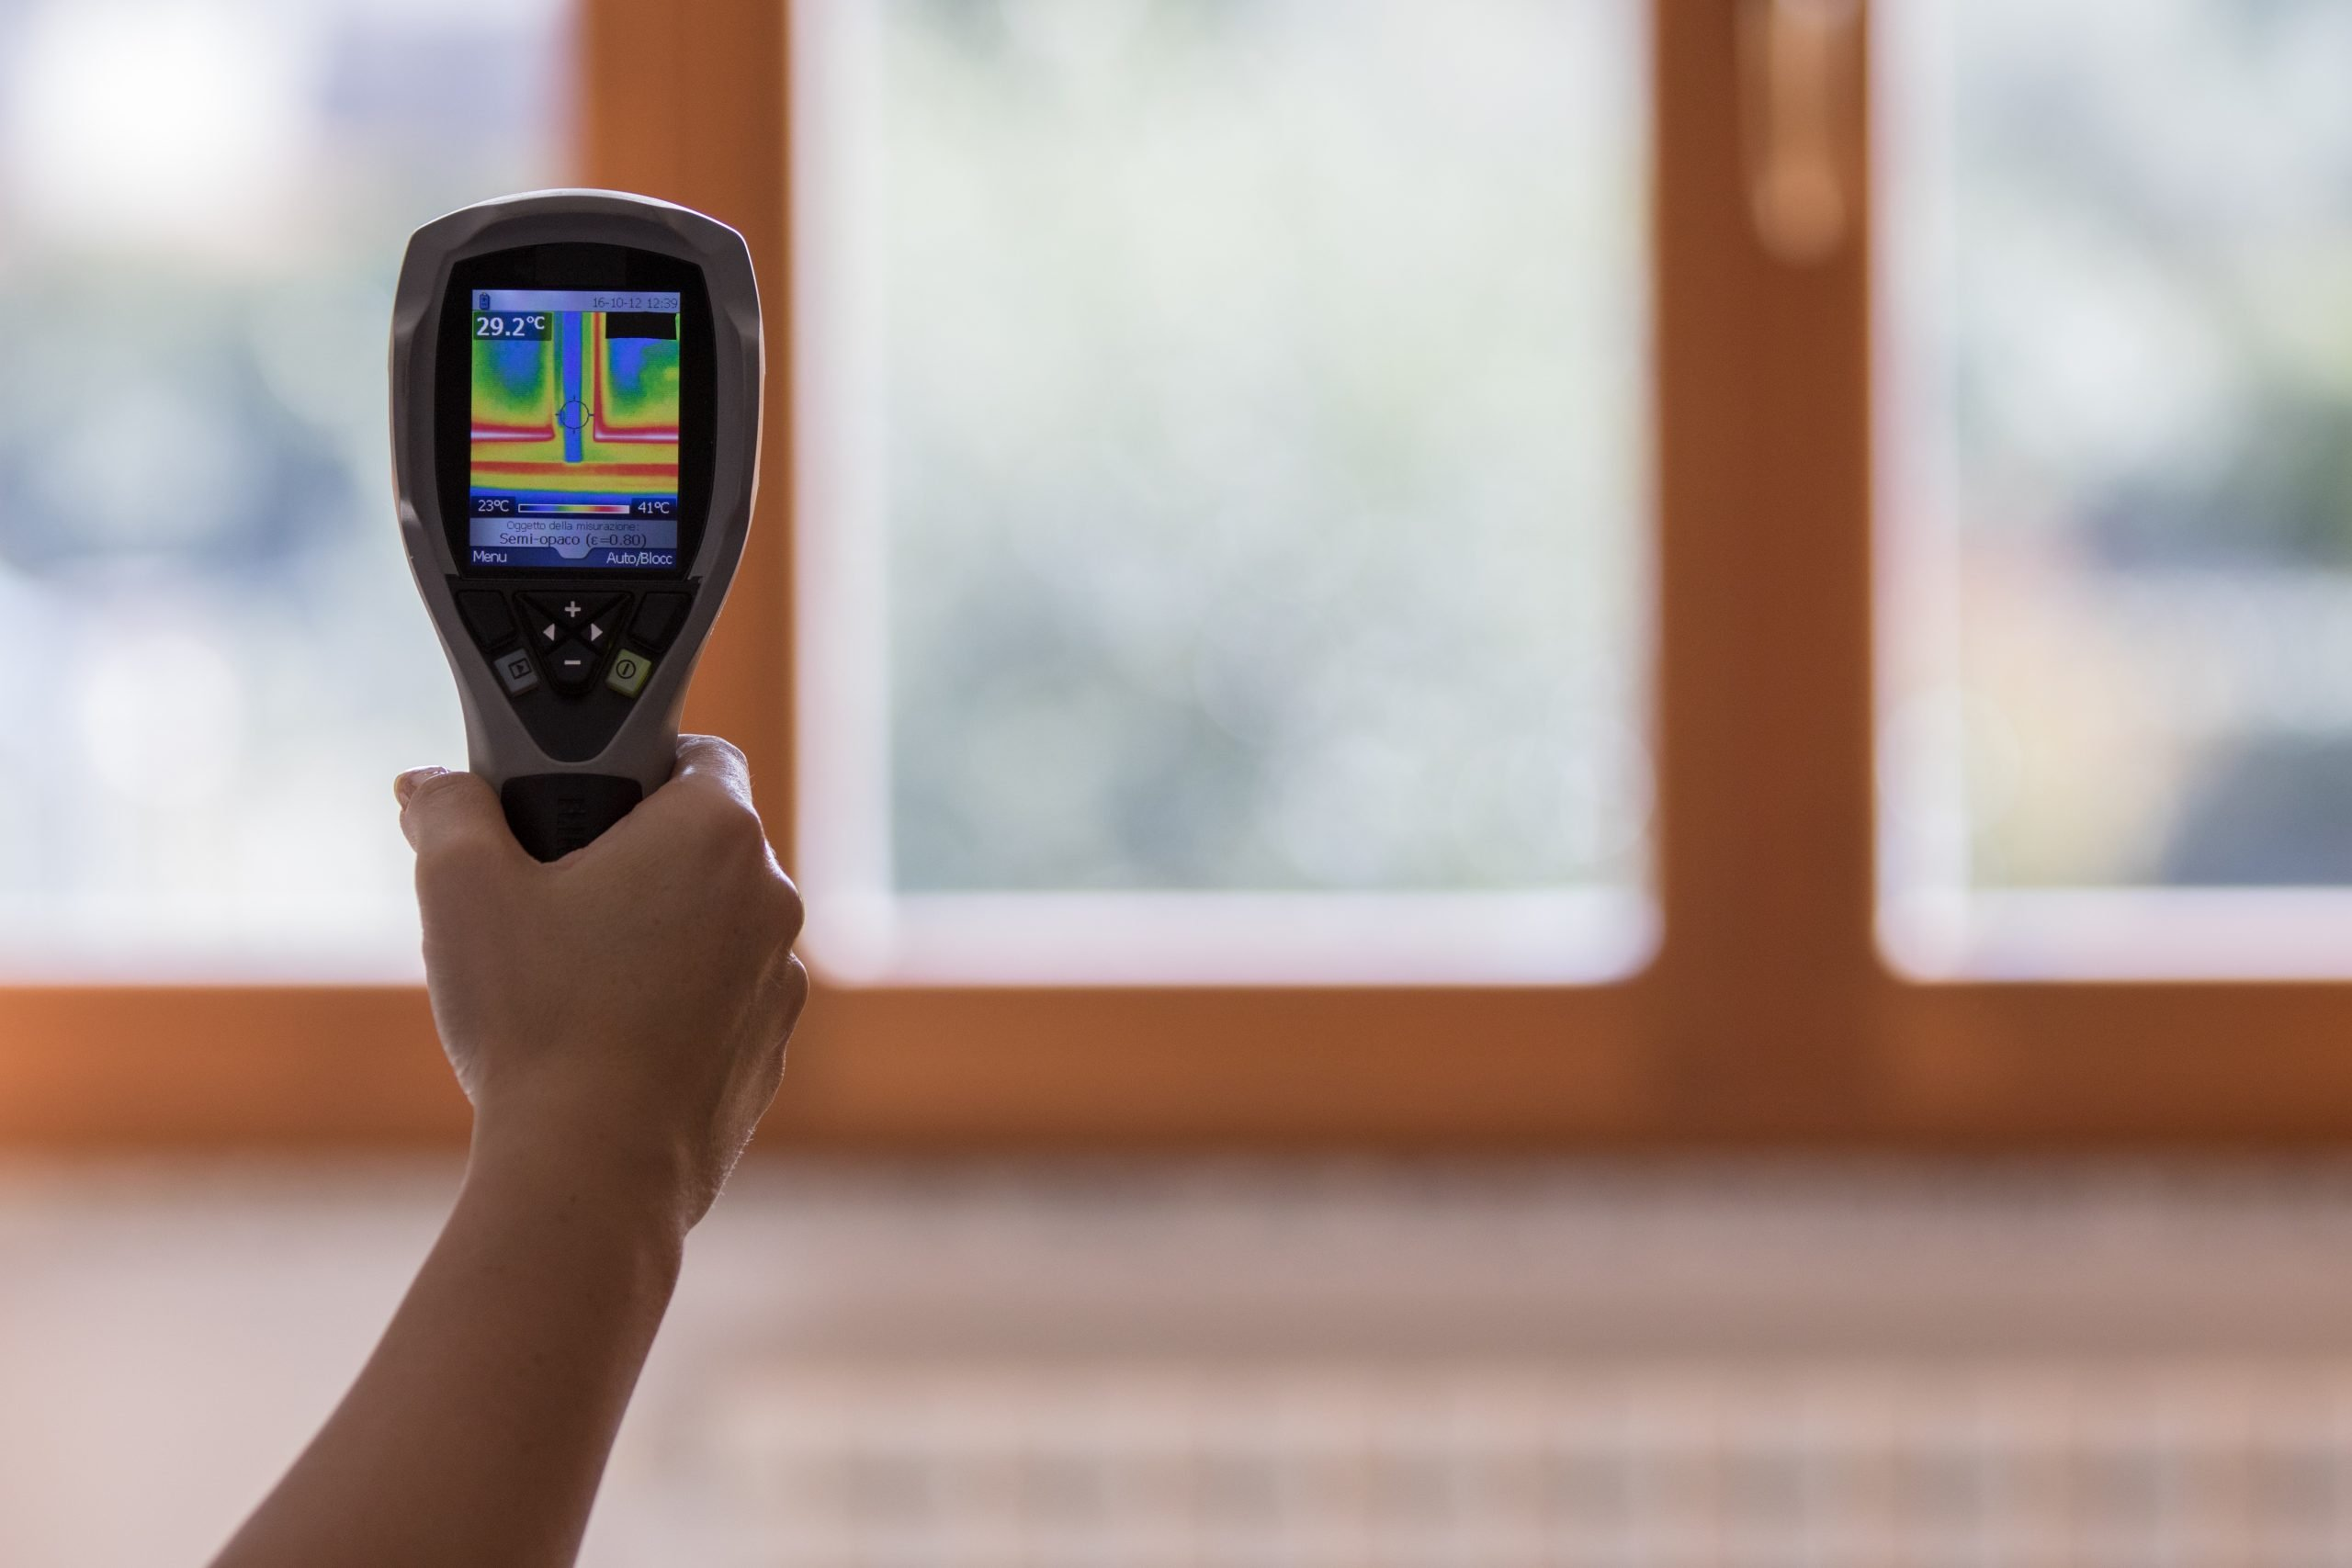 Analysis of the heat on the window with thermal imaging camera